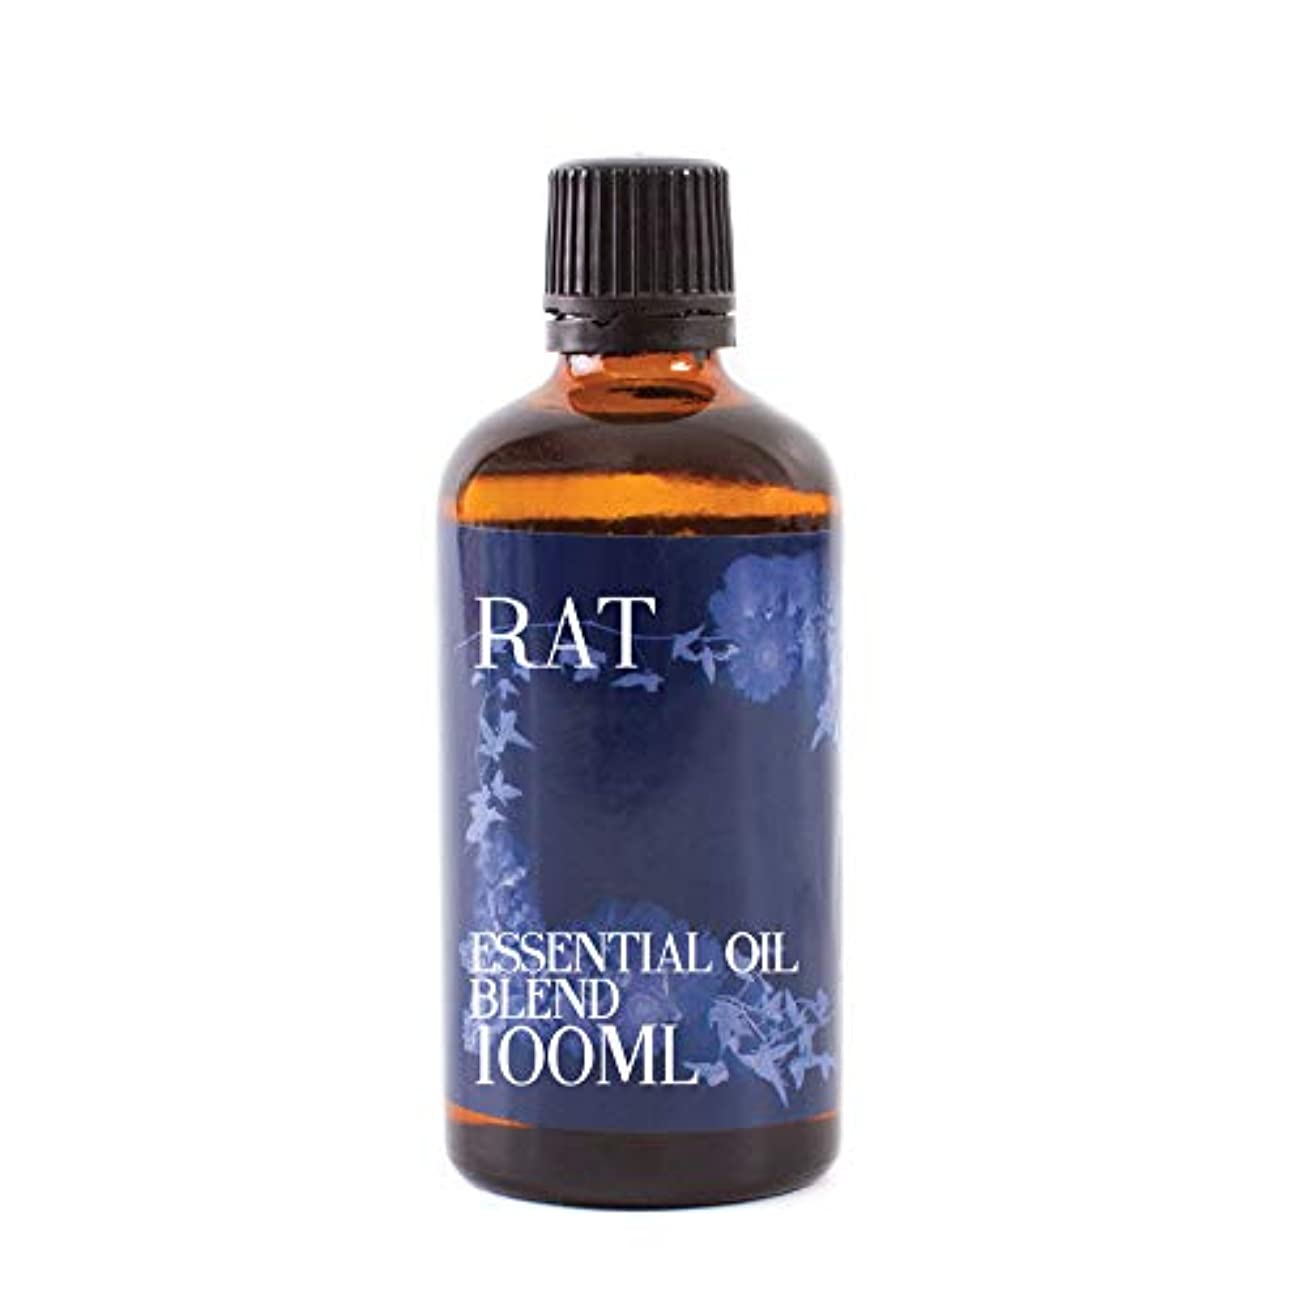 モニター羊の服を着た狼あたりMystix London | Rat | Chinese Zodiac Essential Oil Blend 100ml